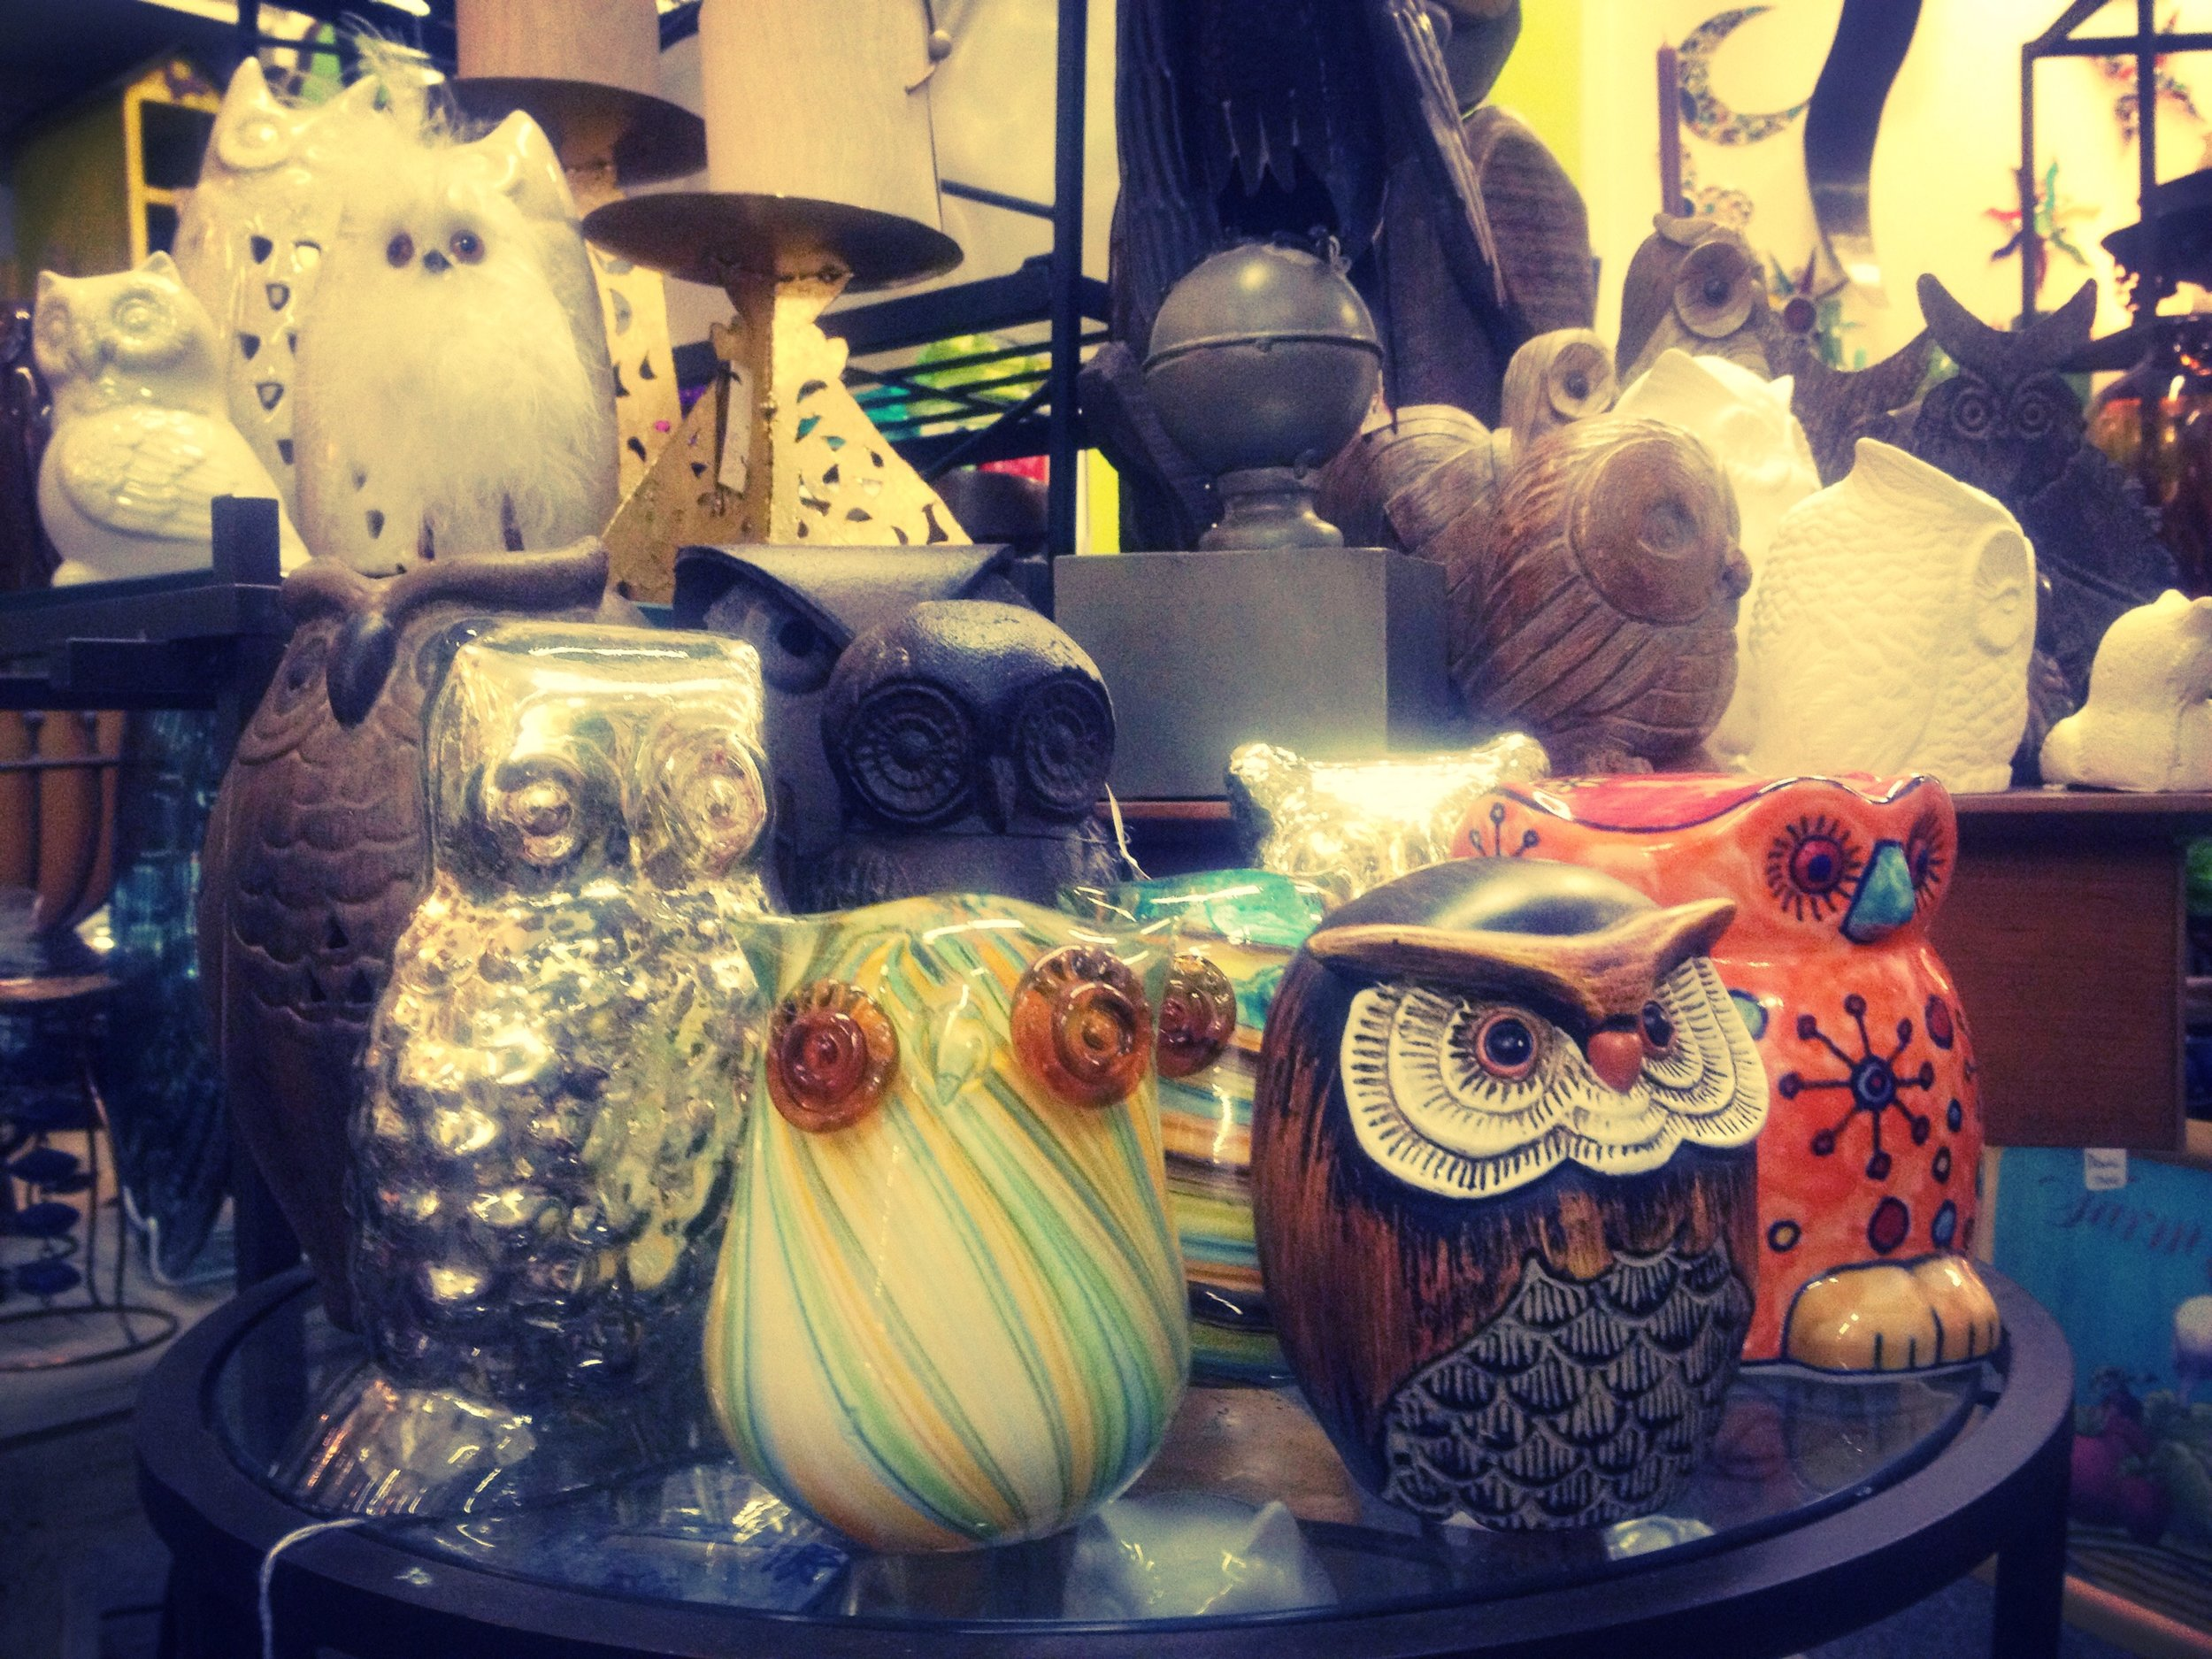 An owl display grand enough even Sam Fink would approve!